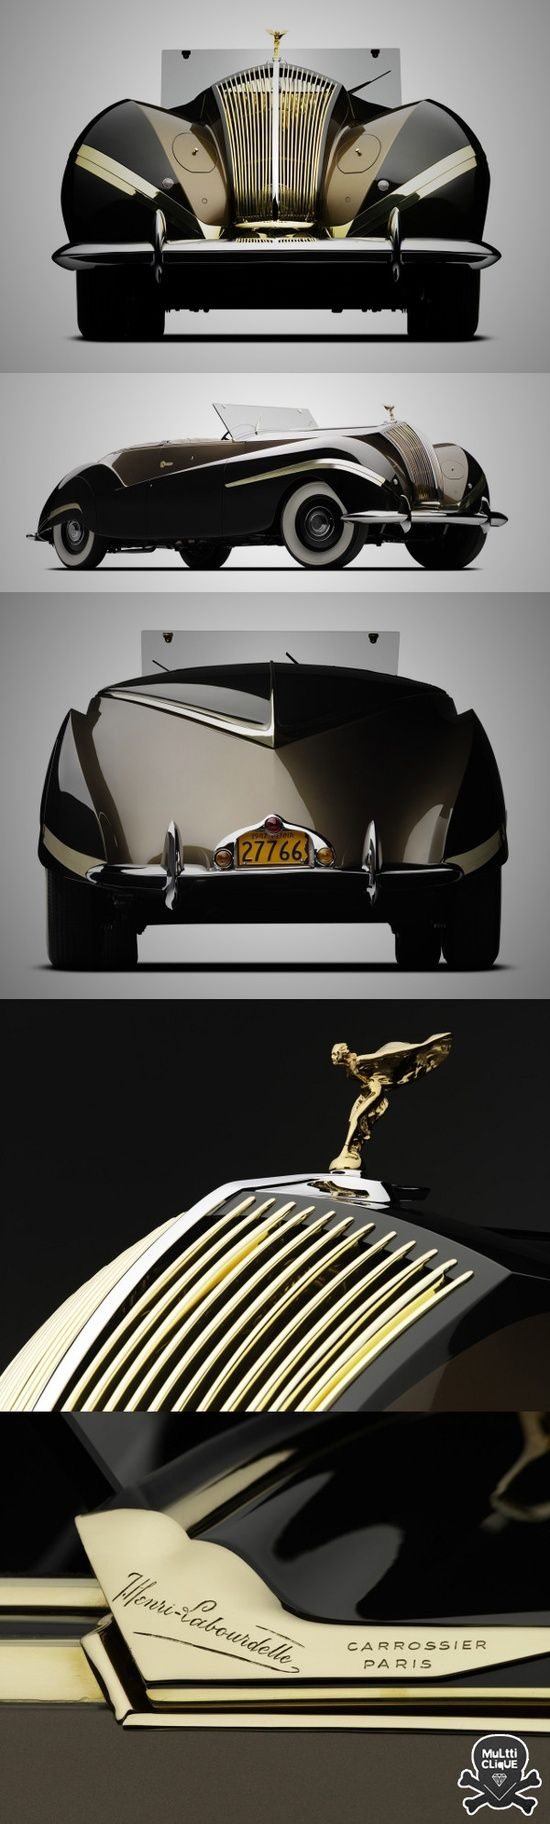 "1939 Rolls-Royce Phantom III ""Vutotal"" Cabriolet by Labourdette Whether"